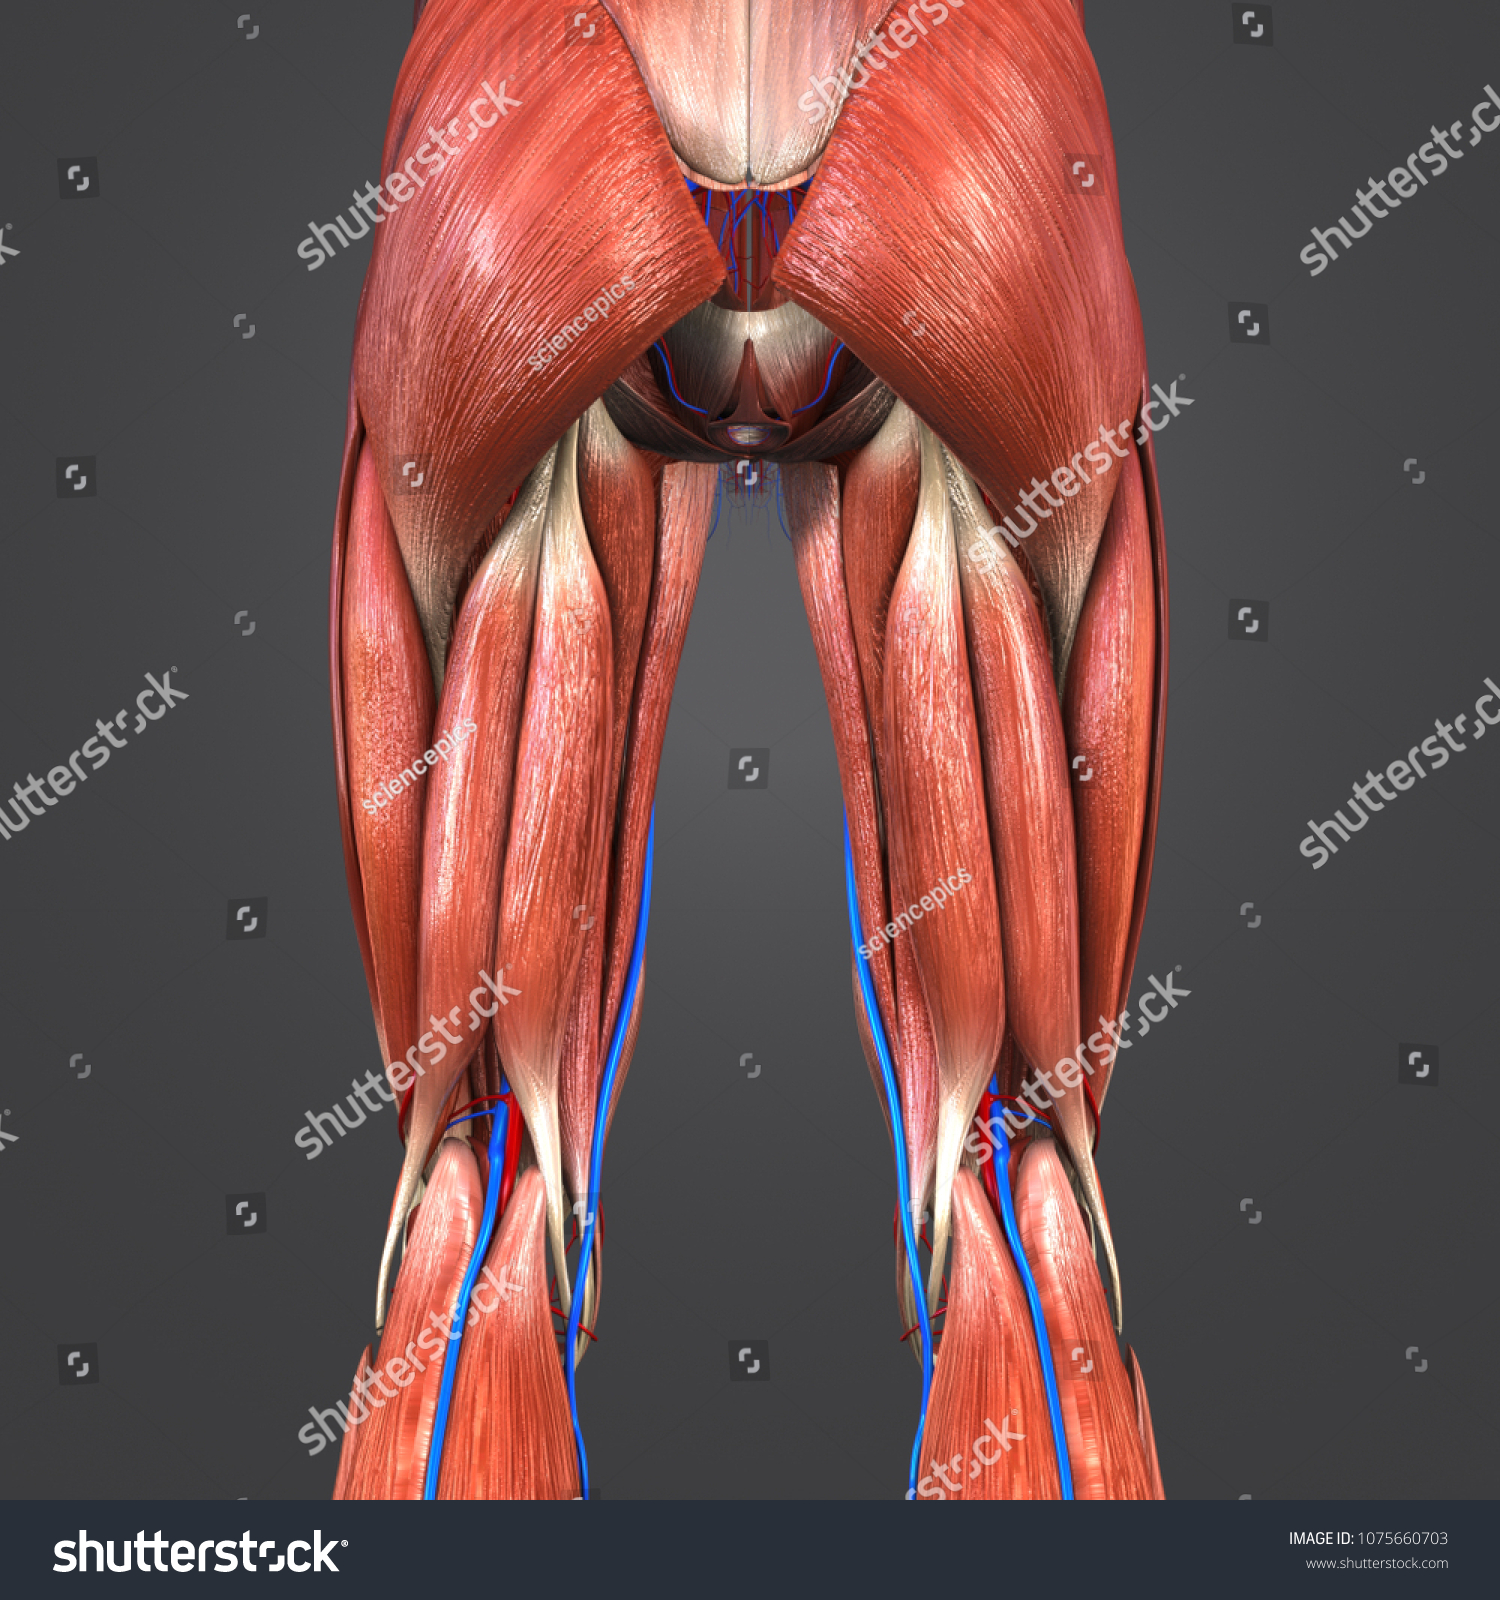 Lower Limbs Muscle Anatomy Arteries Veins Stock Illustration